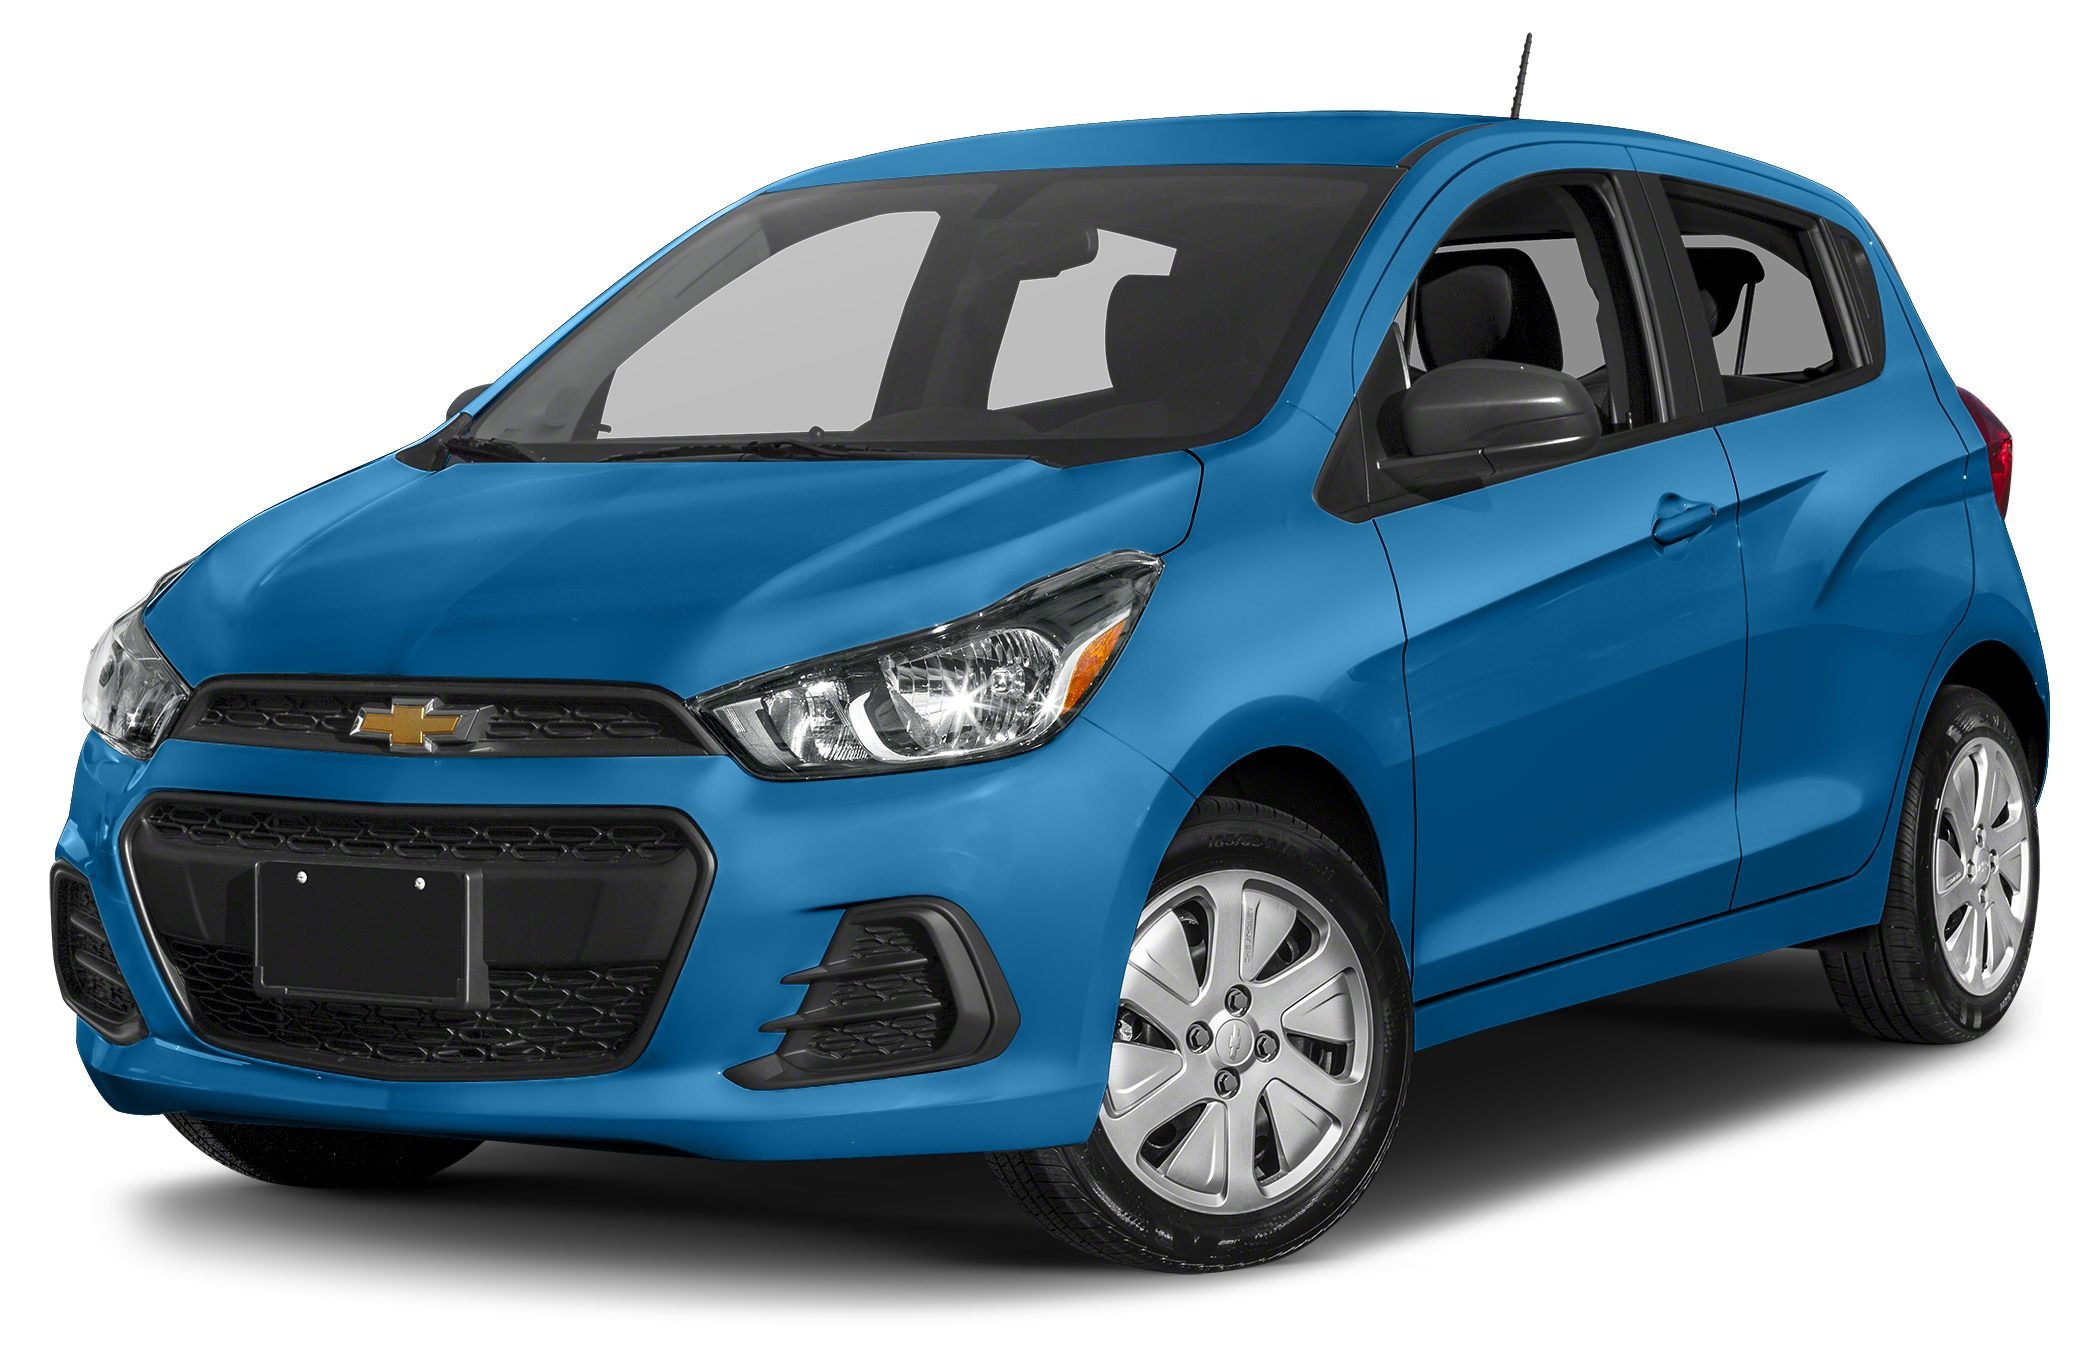 2018 Chevrolet Spark LS Miles 5Color Blue Metallic Stock 180276 VIN KL8CA6SA2JC420404